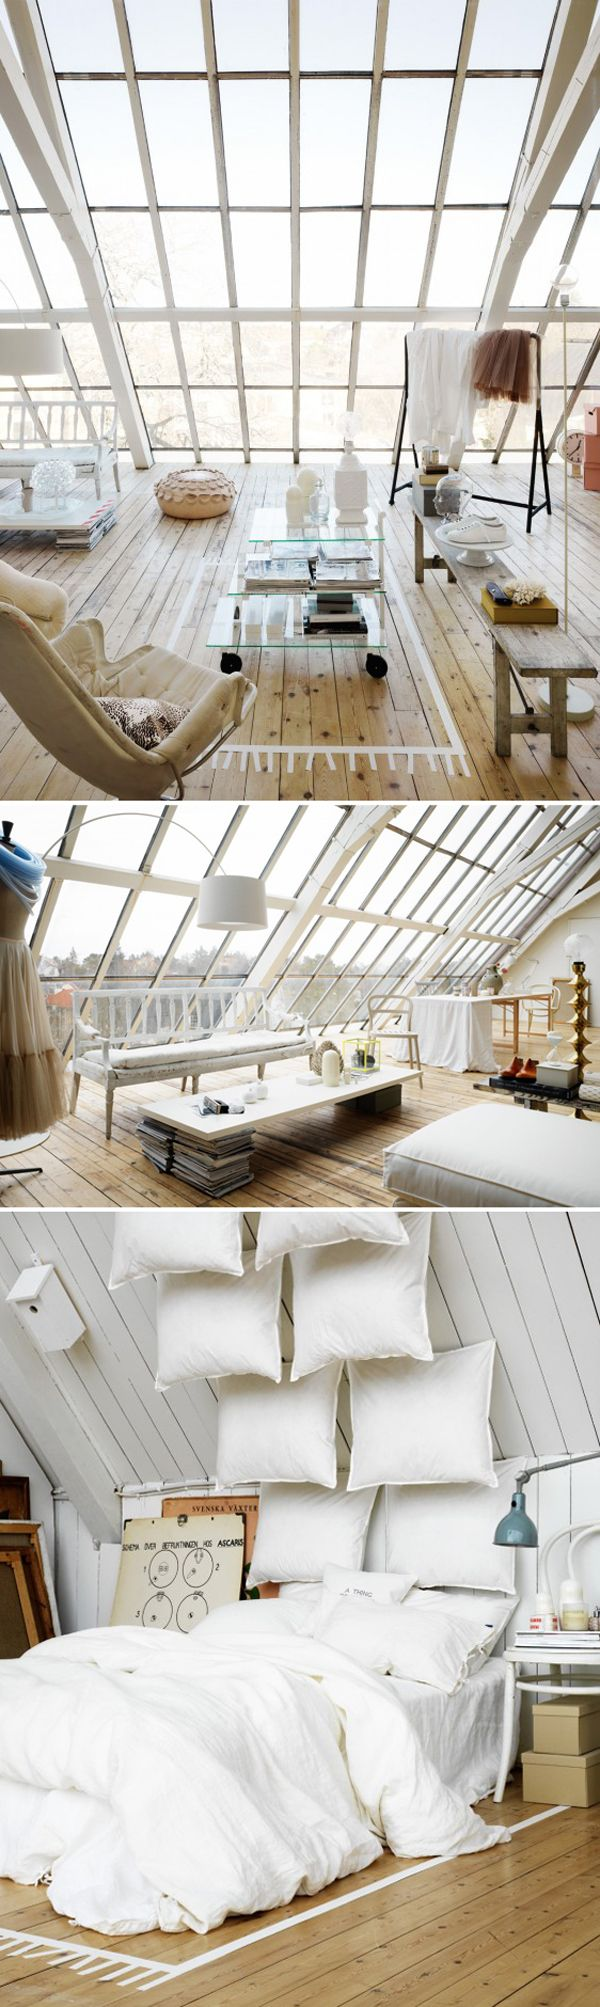 Love this beautiful window, the white and the pillows ! Great inspiration for my dream home ;)/ verrières / fenêtre de toit